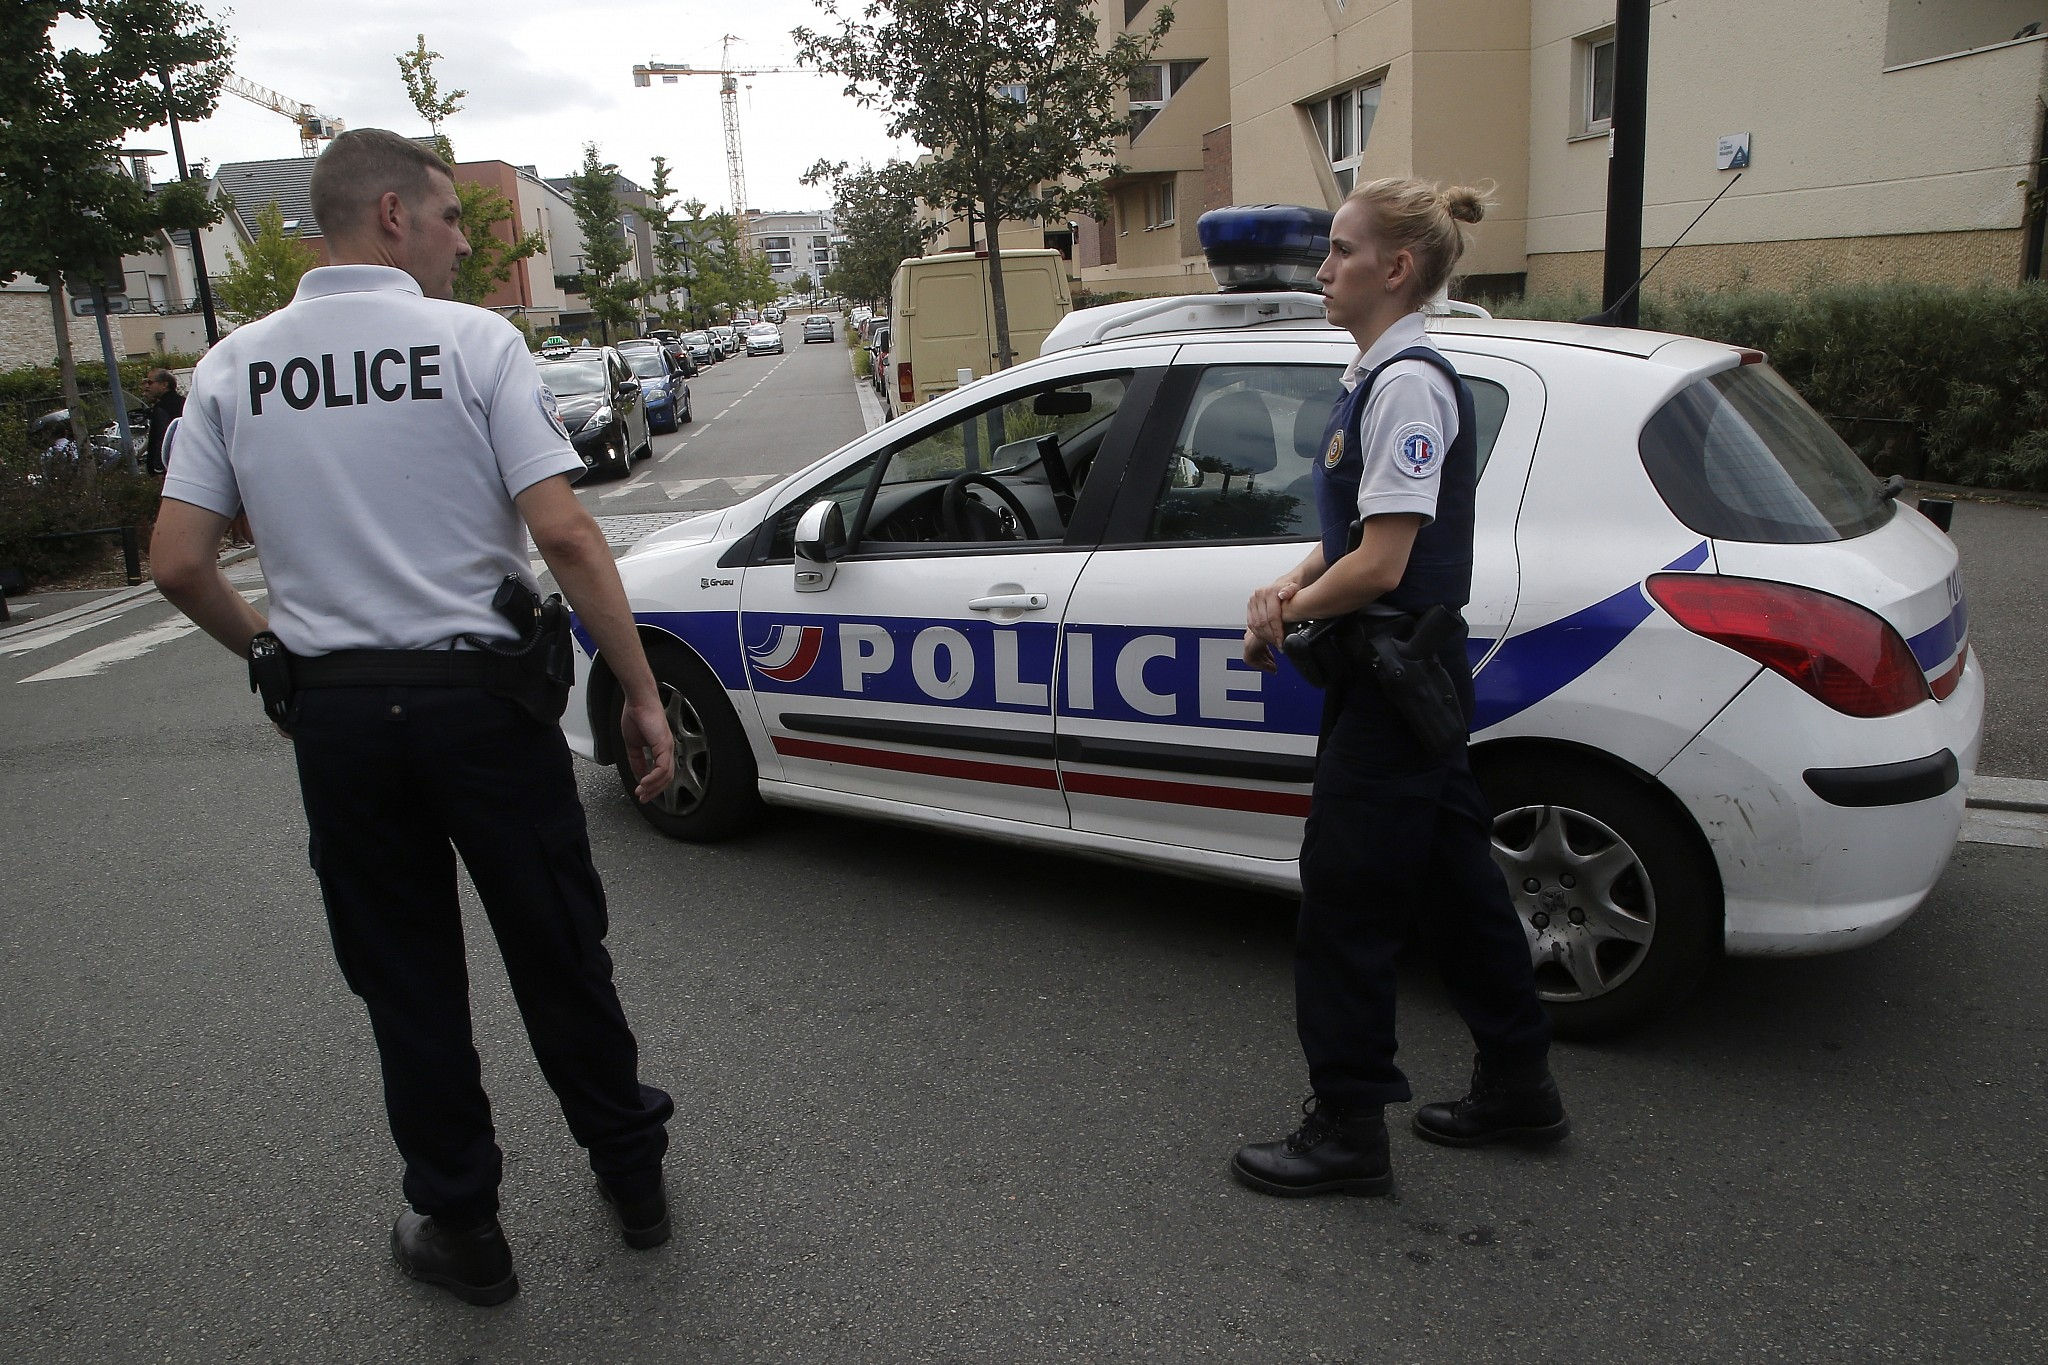 Knifeman kills his mother and sister on street in Paris suburb